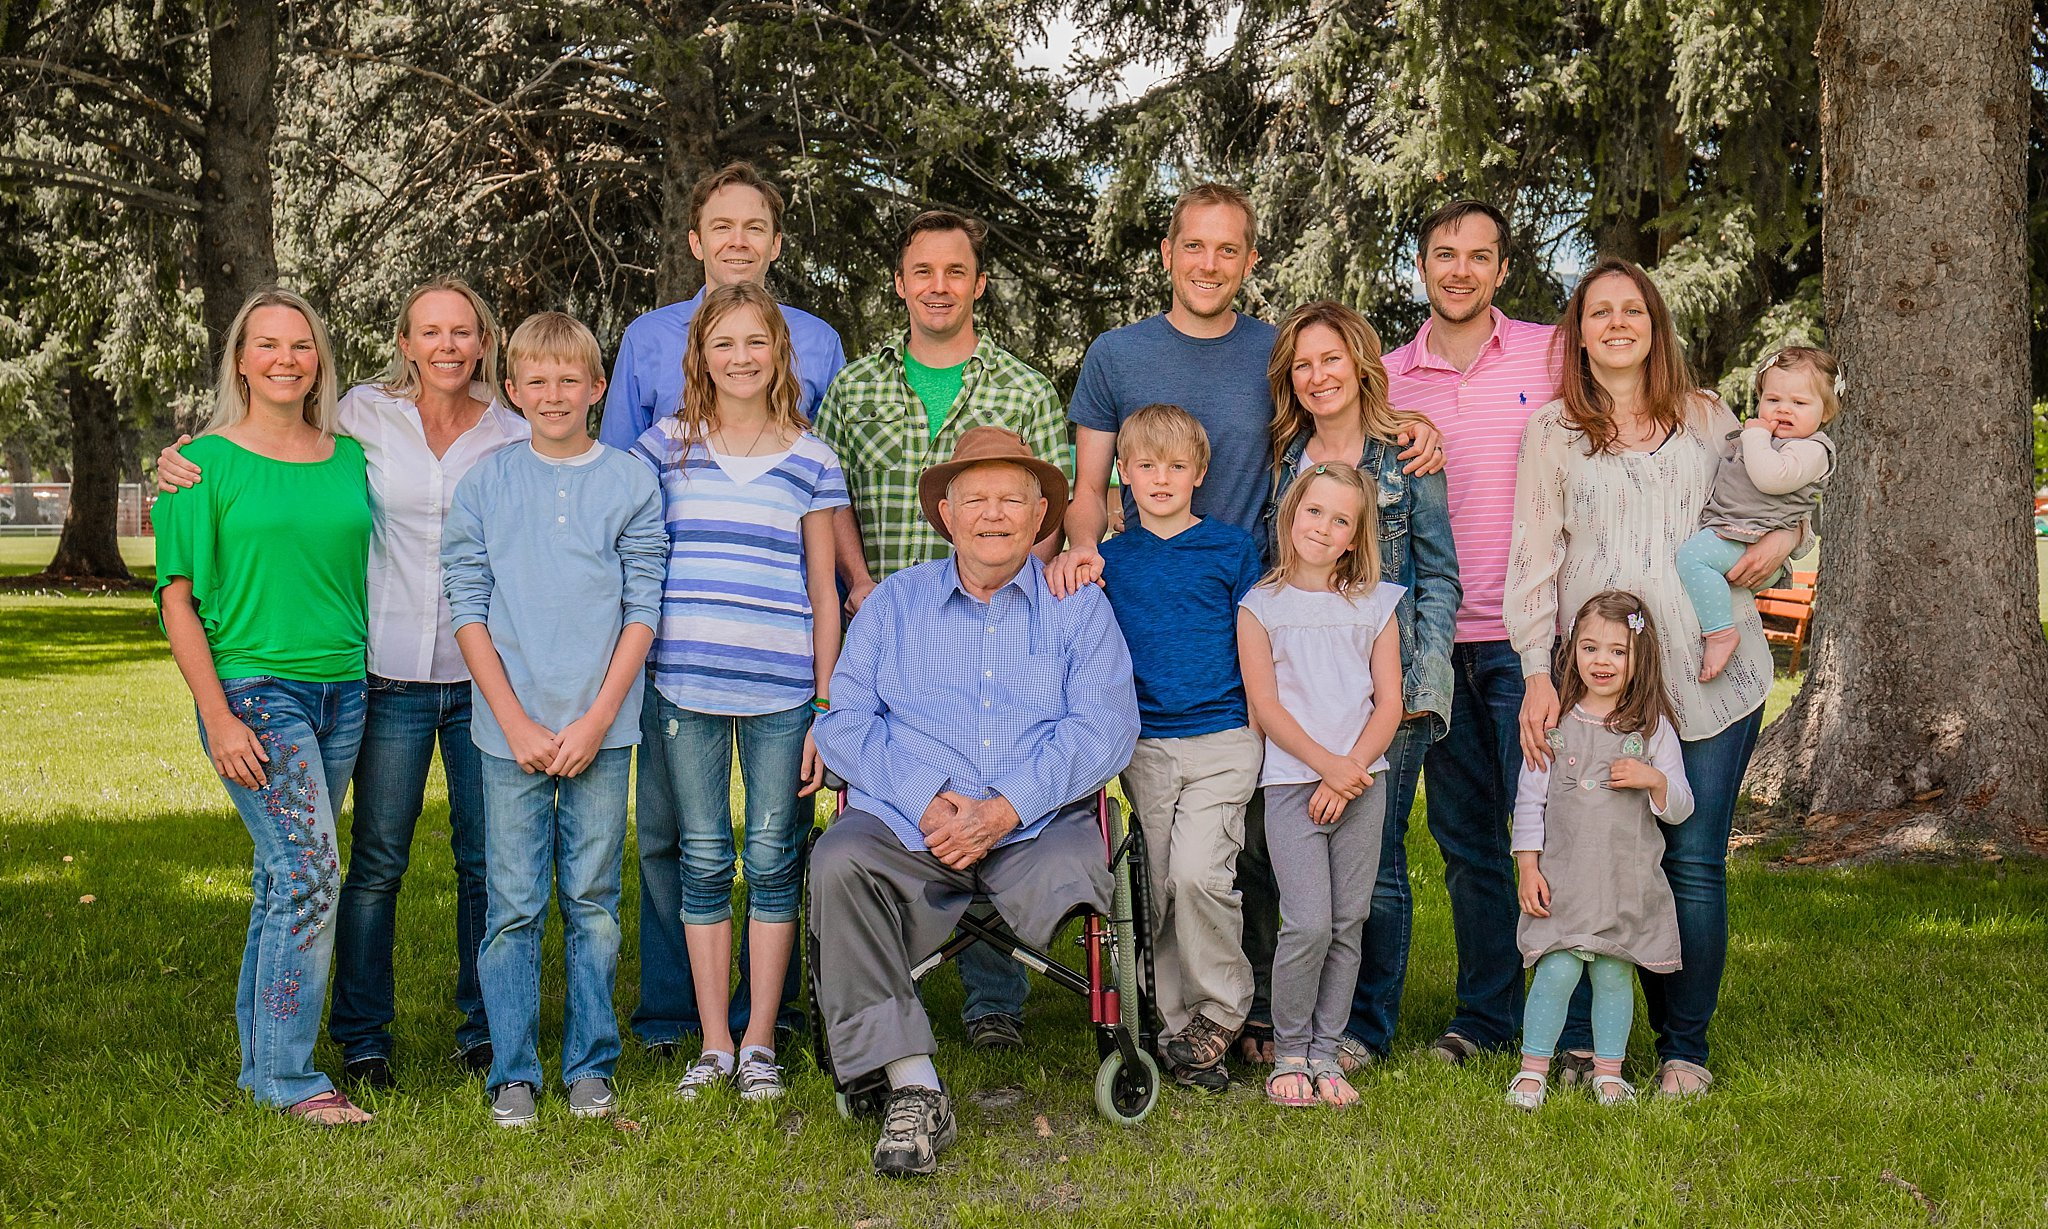 Utah,extended family,huntsville extended family photographer,ogden,ogden family photographer,salt lake city family photographer,salt lake city family photography,